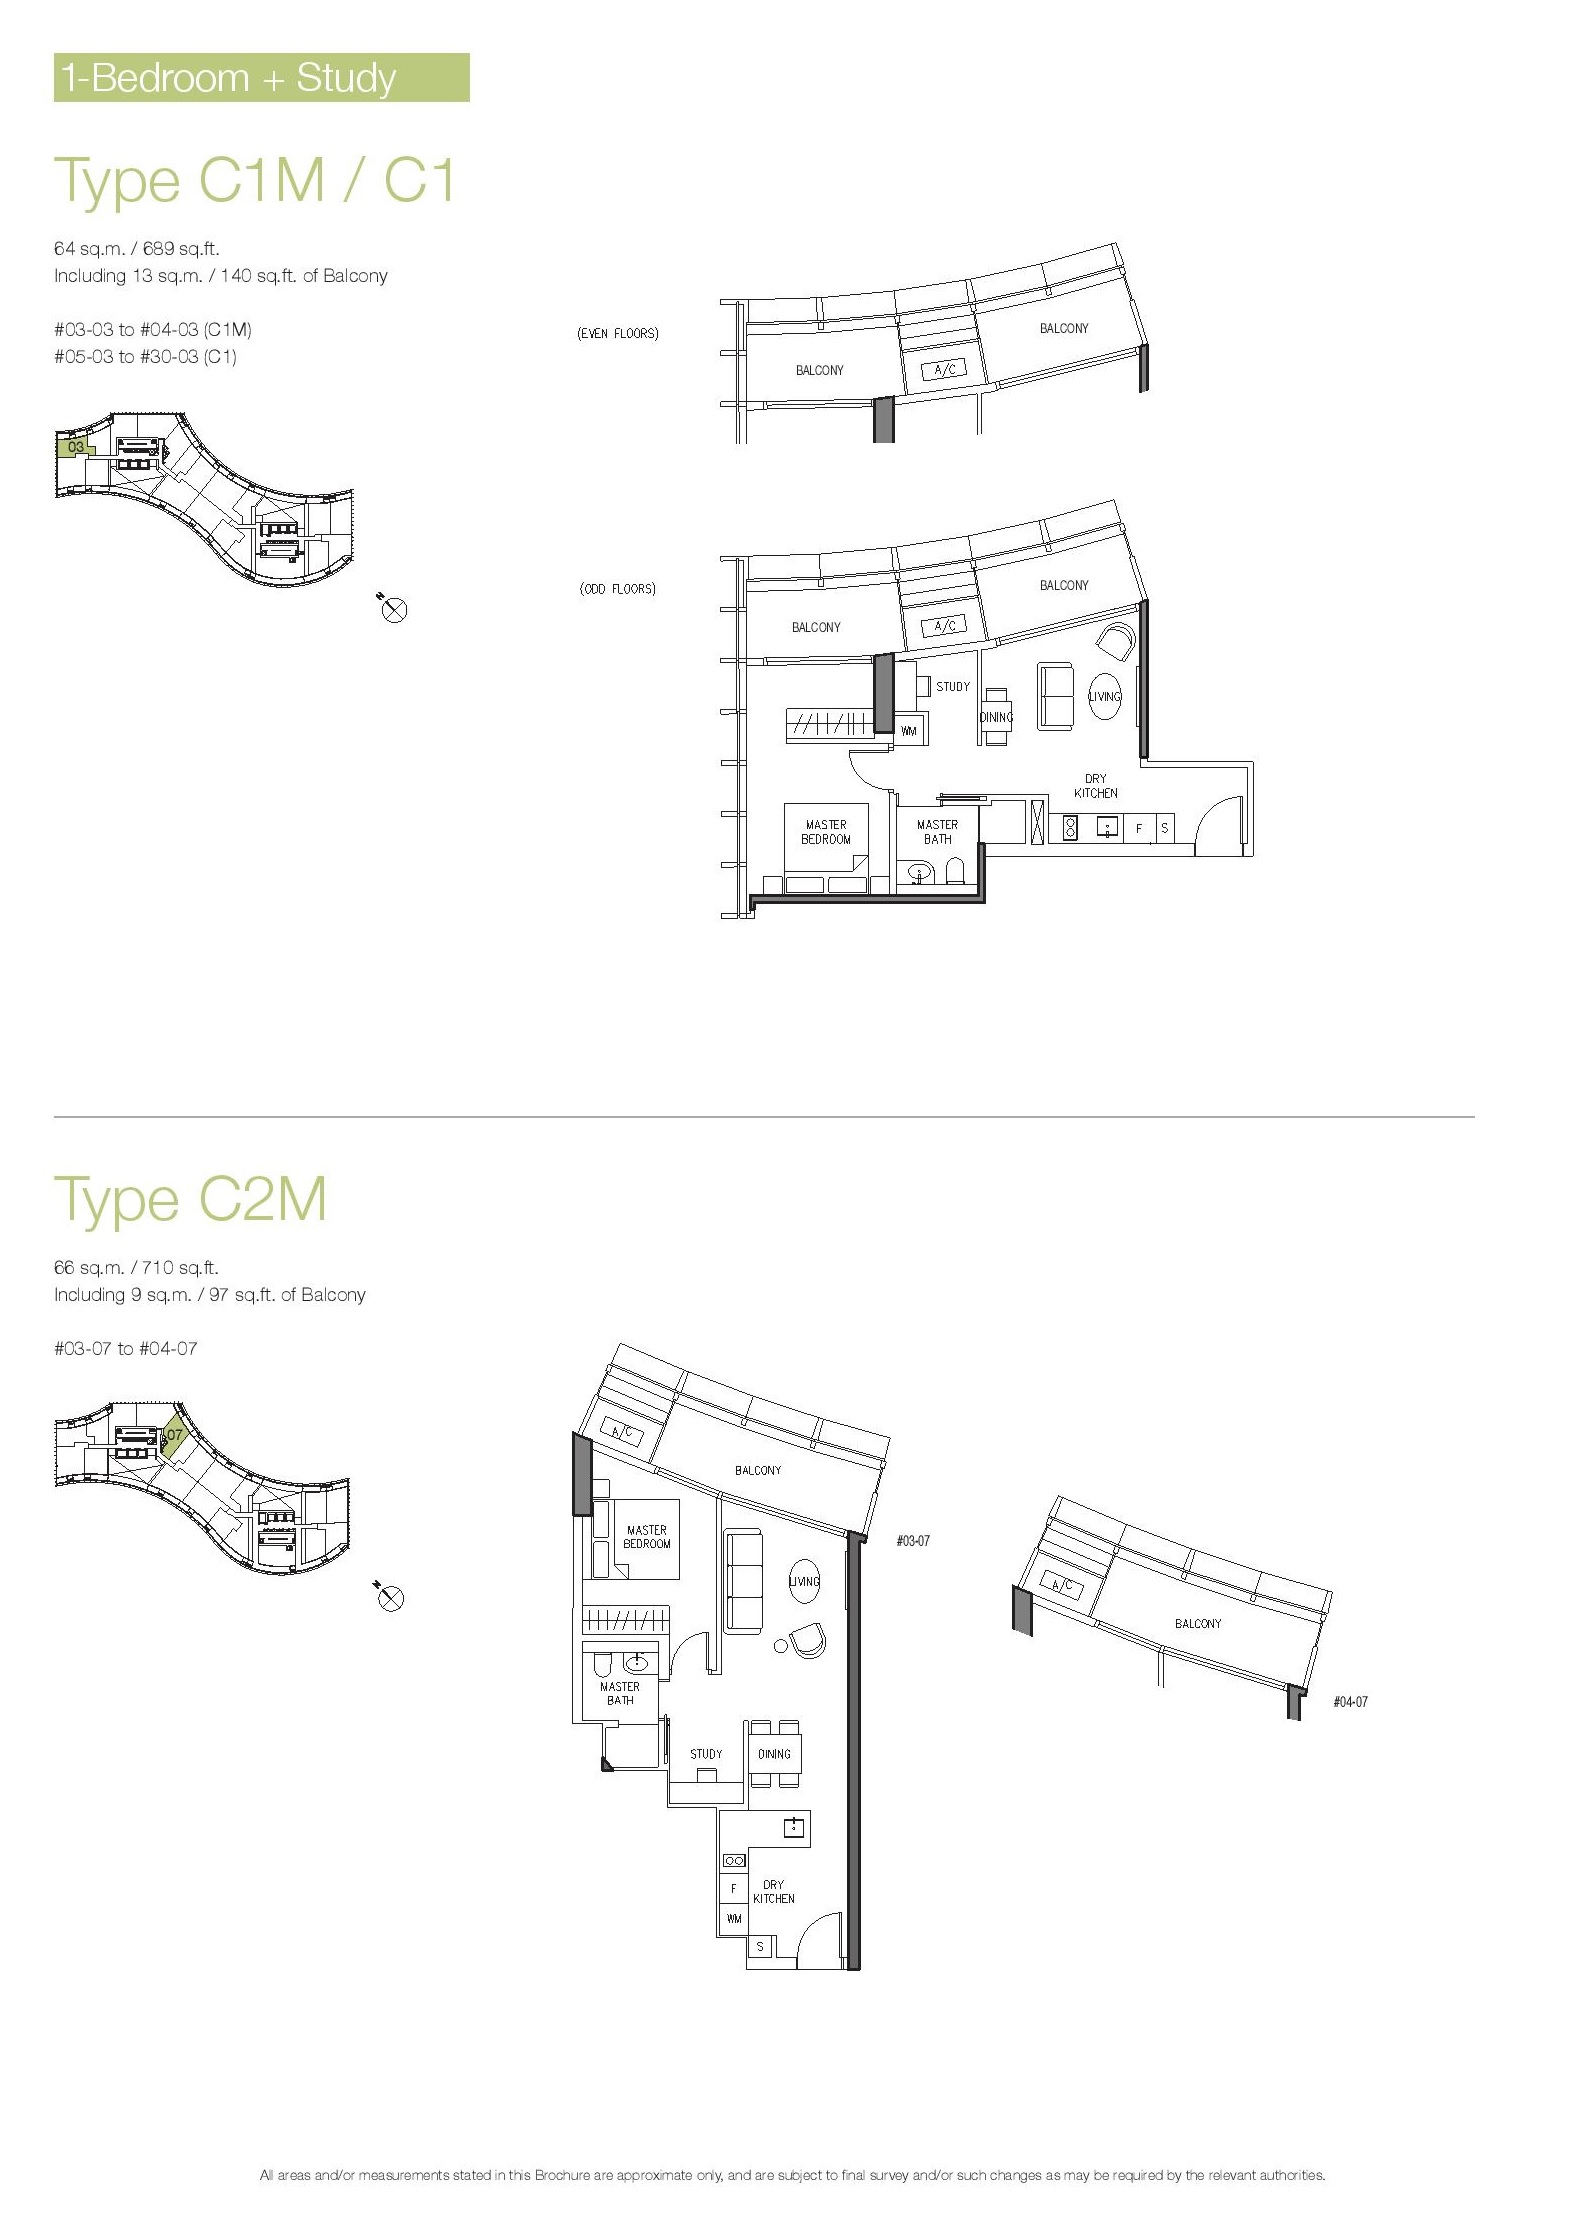 Duo Residences 1 Bedroom + Study Floor Plan Type C1M, C1, C2M